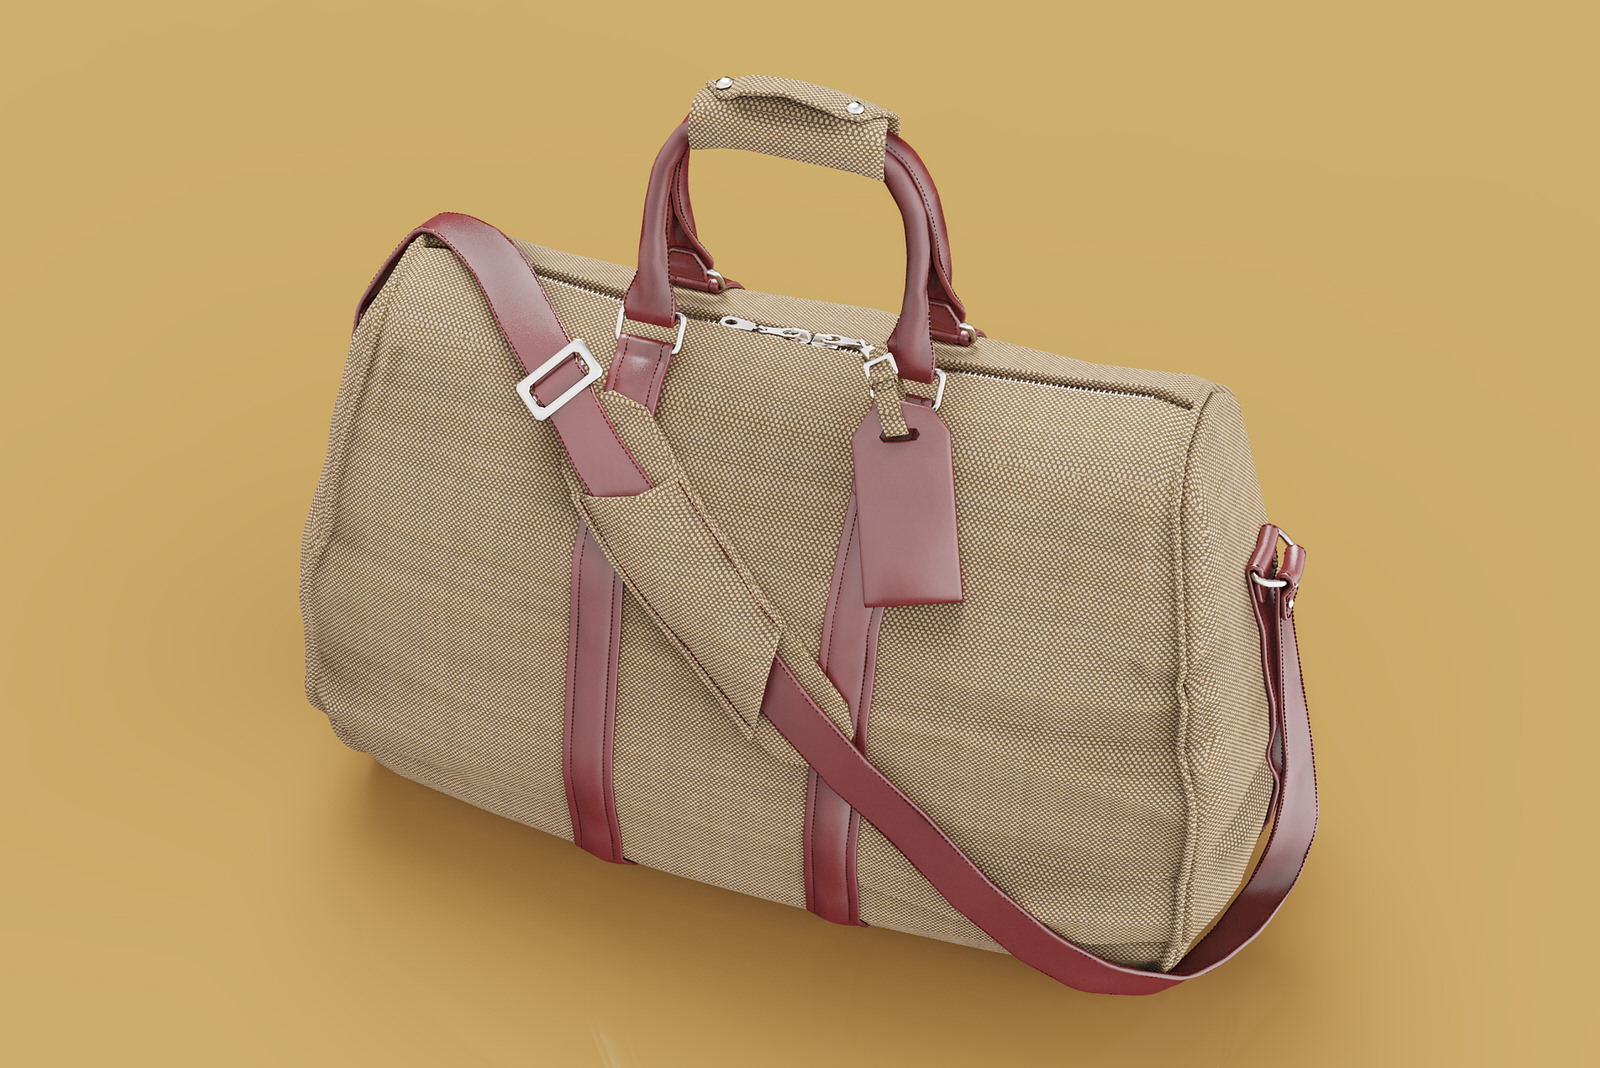 Product photography of a duffel bag using CGI